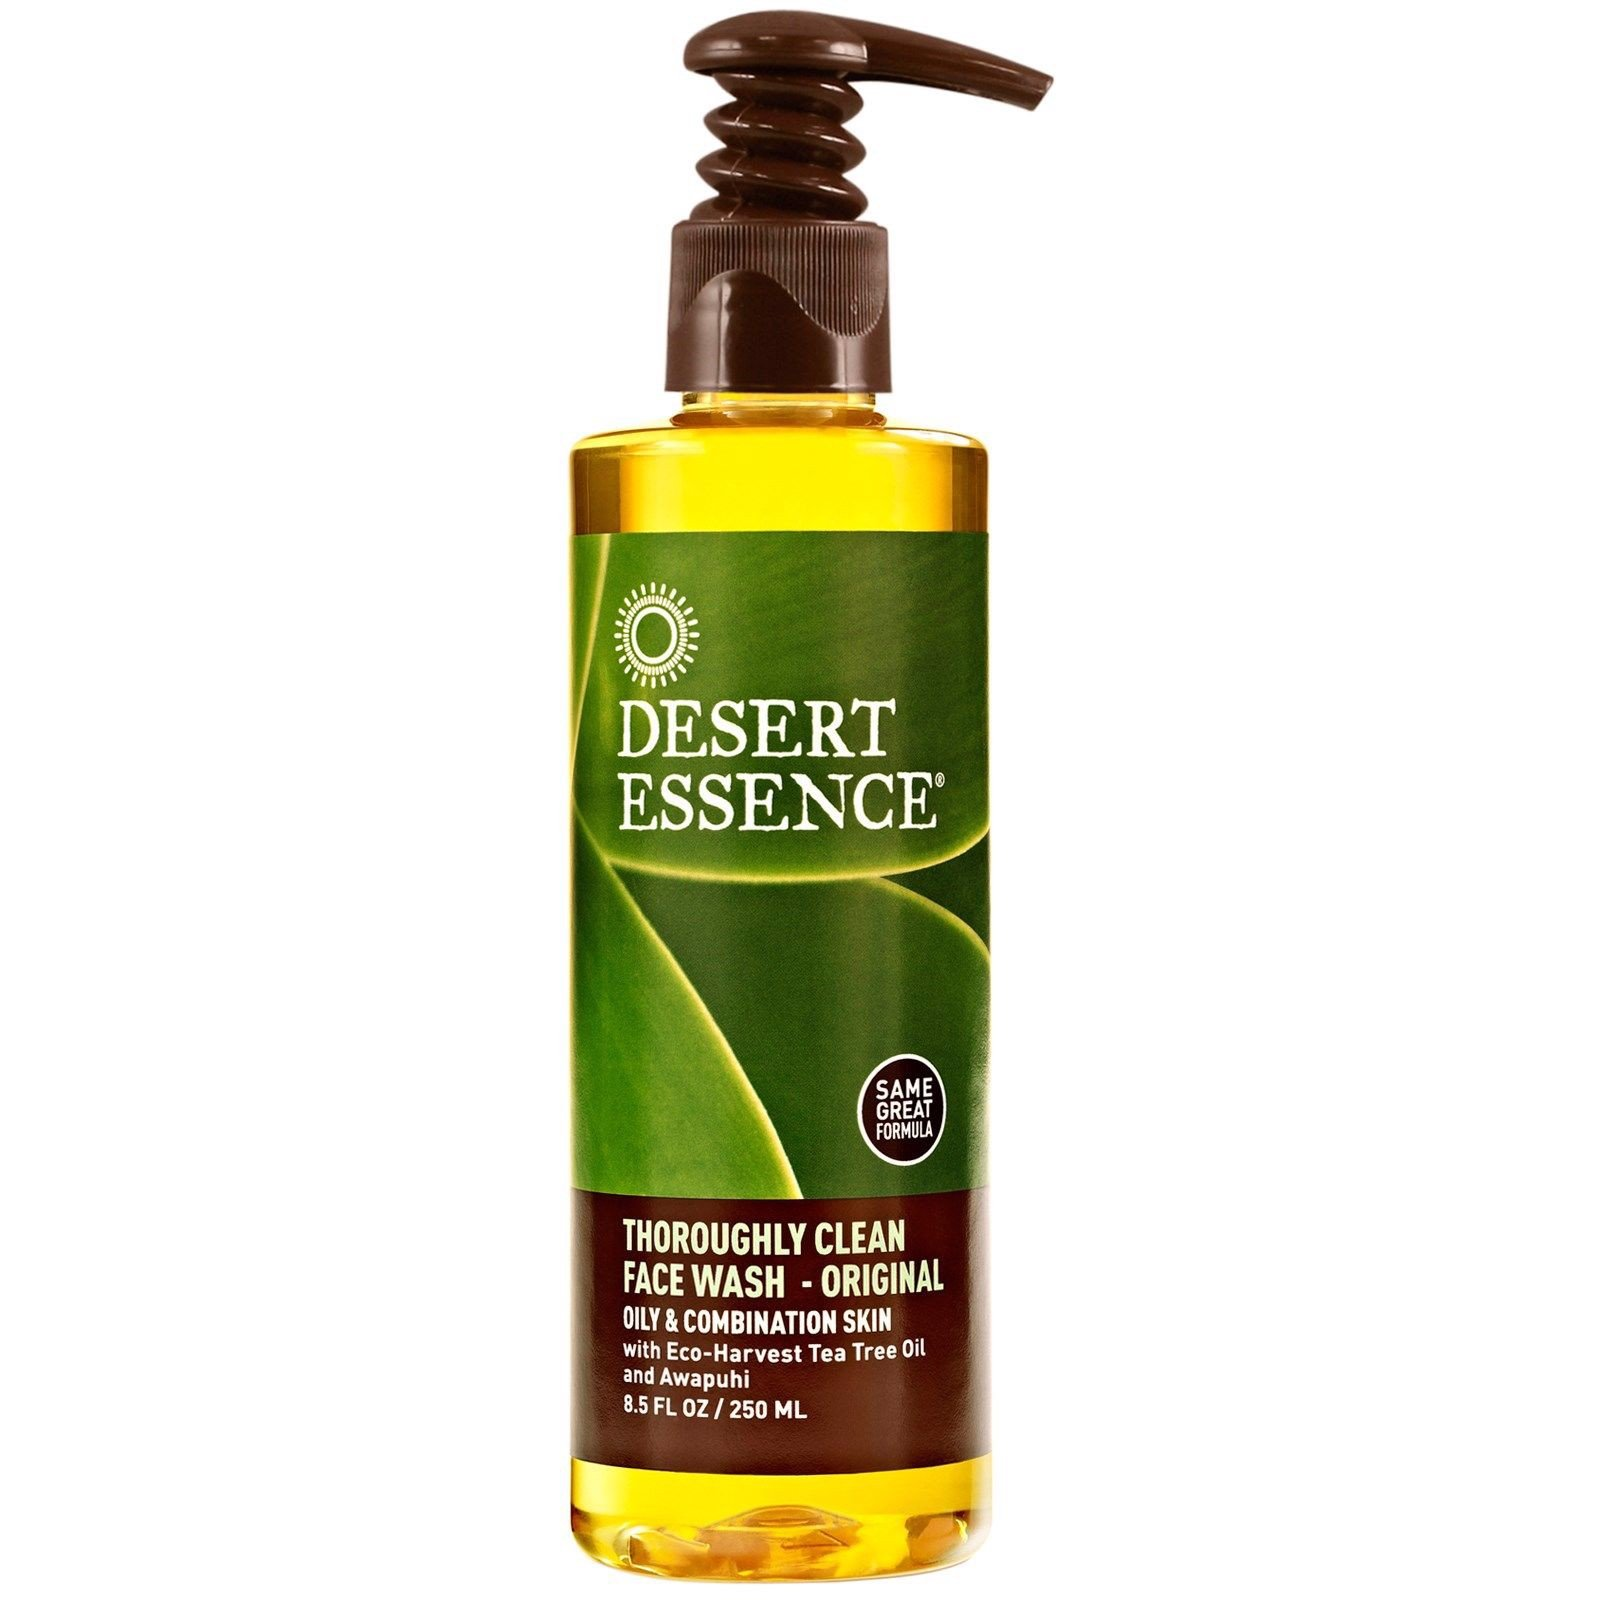 Sữa rửa mặt Desert Essence Thoroughly Clean Face Wash Original